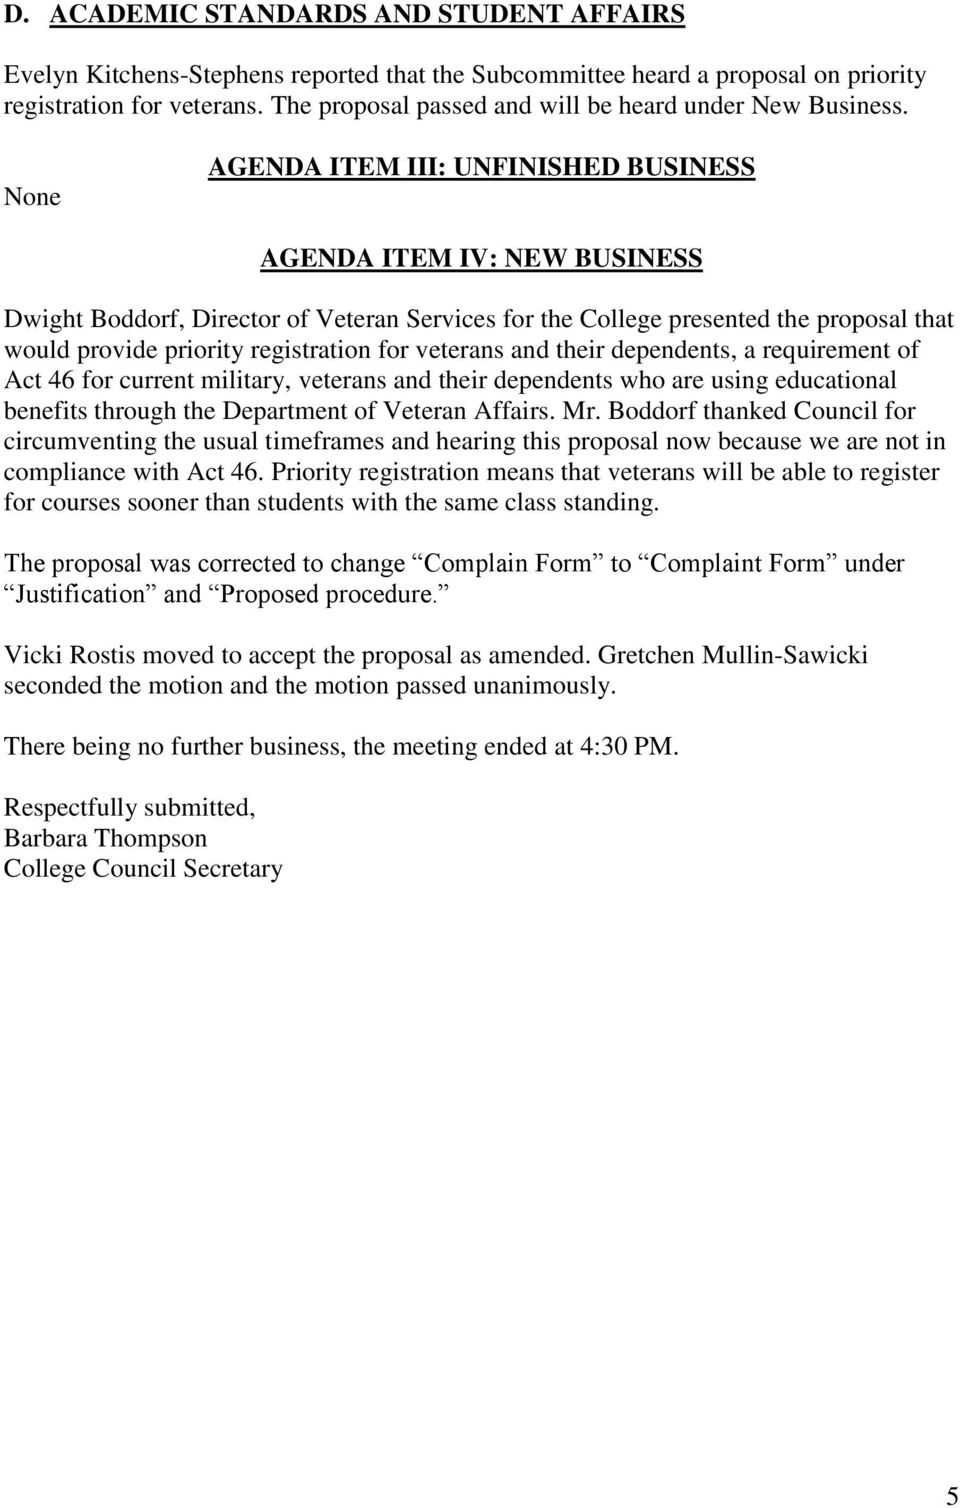 None AGENDA ITEM III: UNFINISHED BUSINESS AGENDA ITEM IV: NEW BUSINESS Dwight Boddorf, Director of Veteran Services for the College presented the proposal that would provide priority registration for